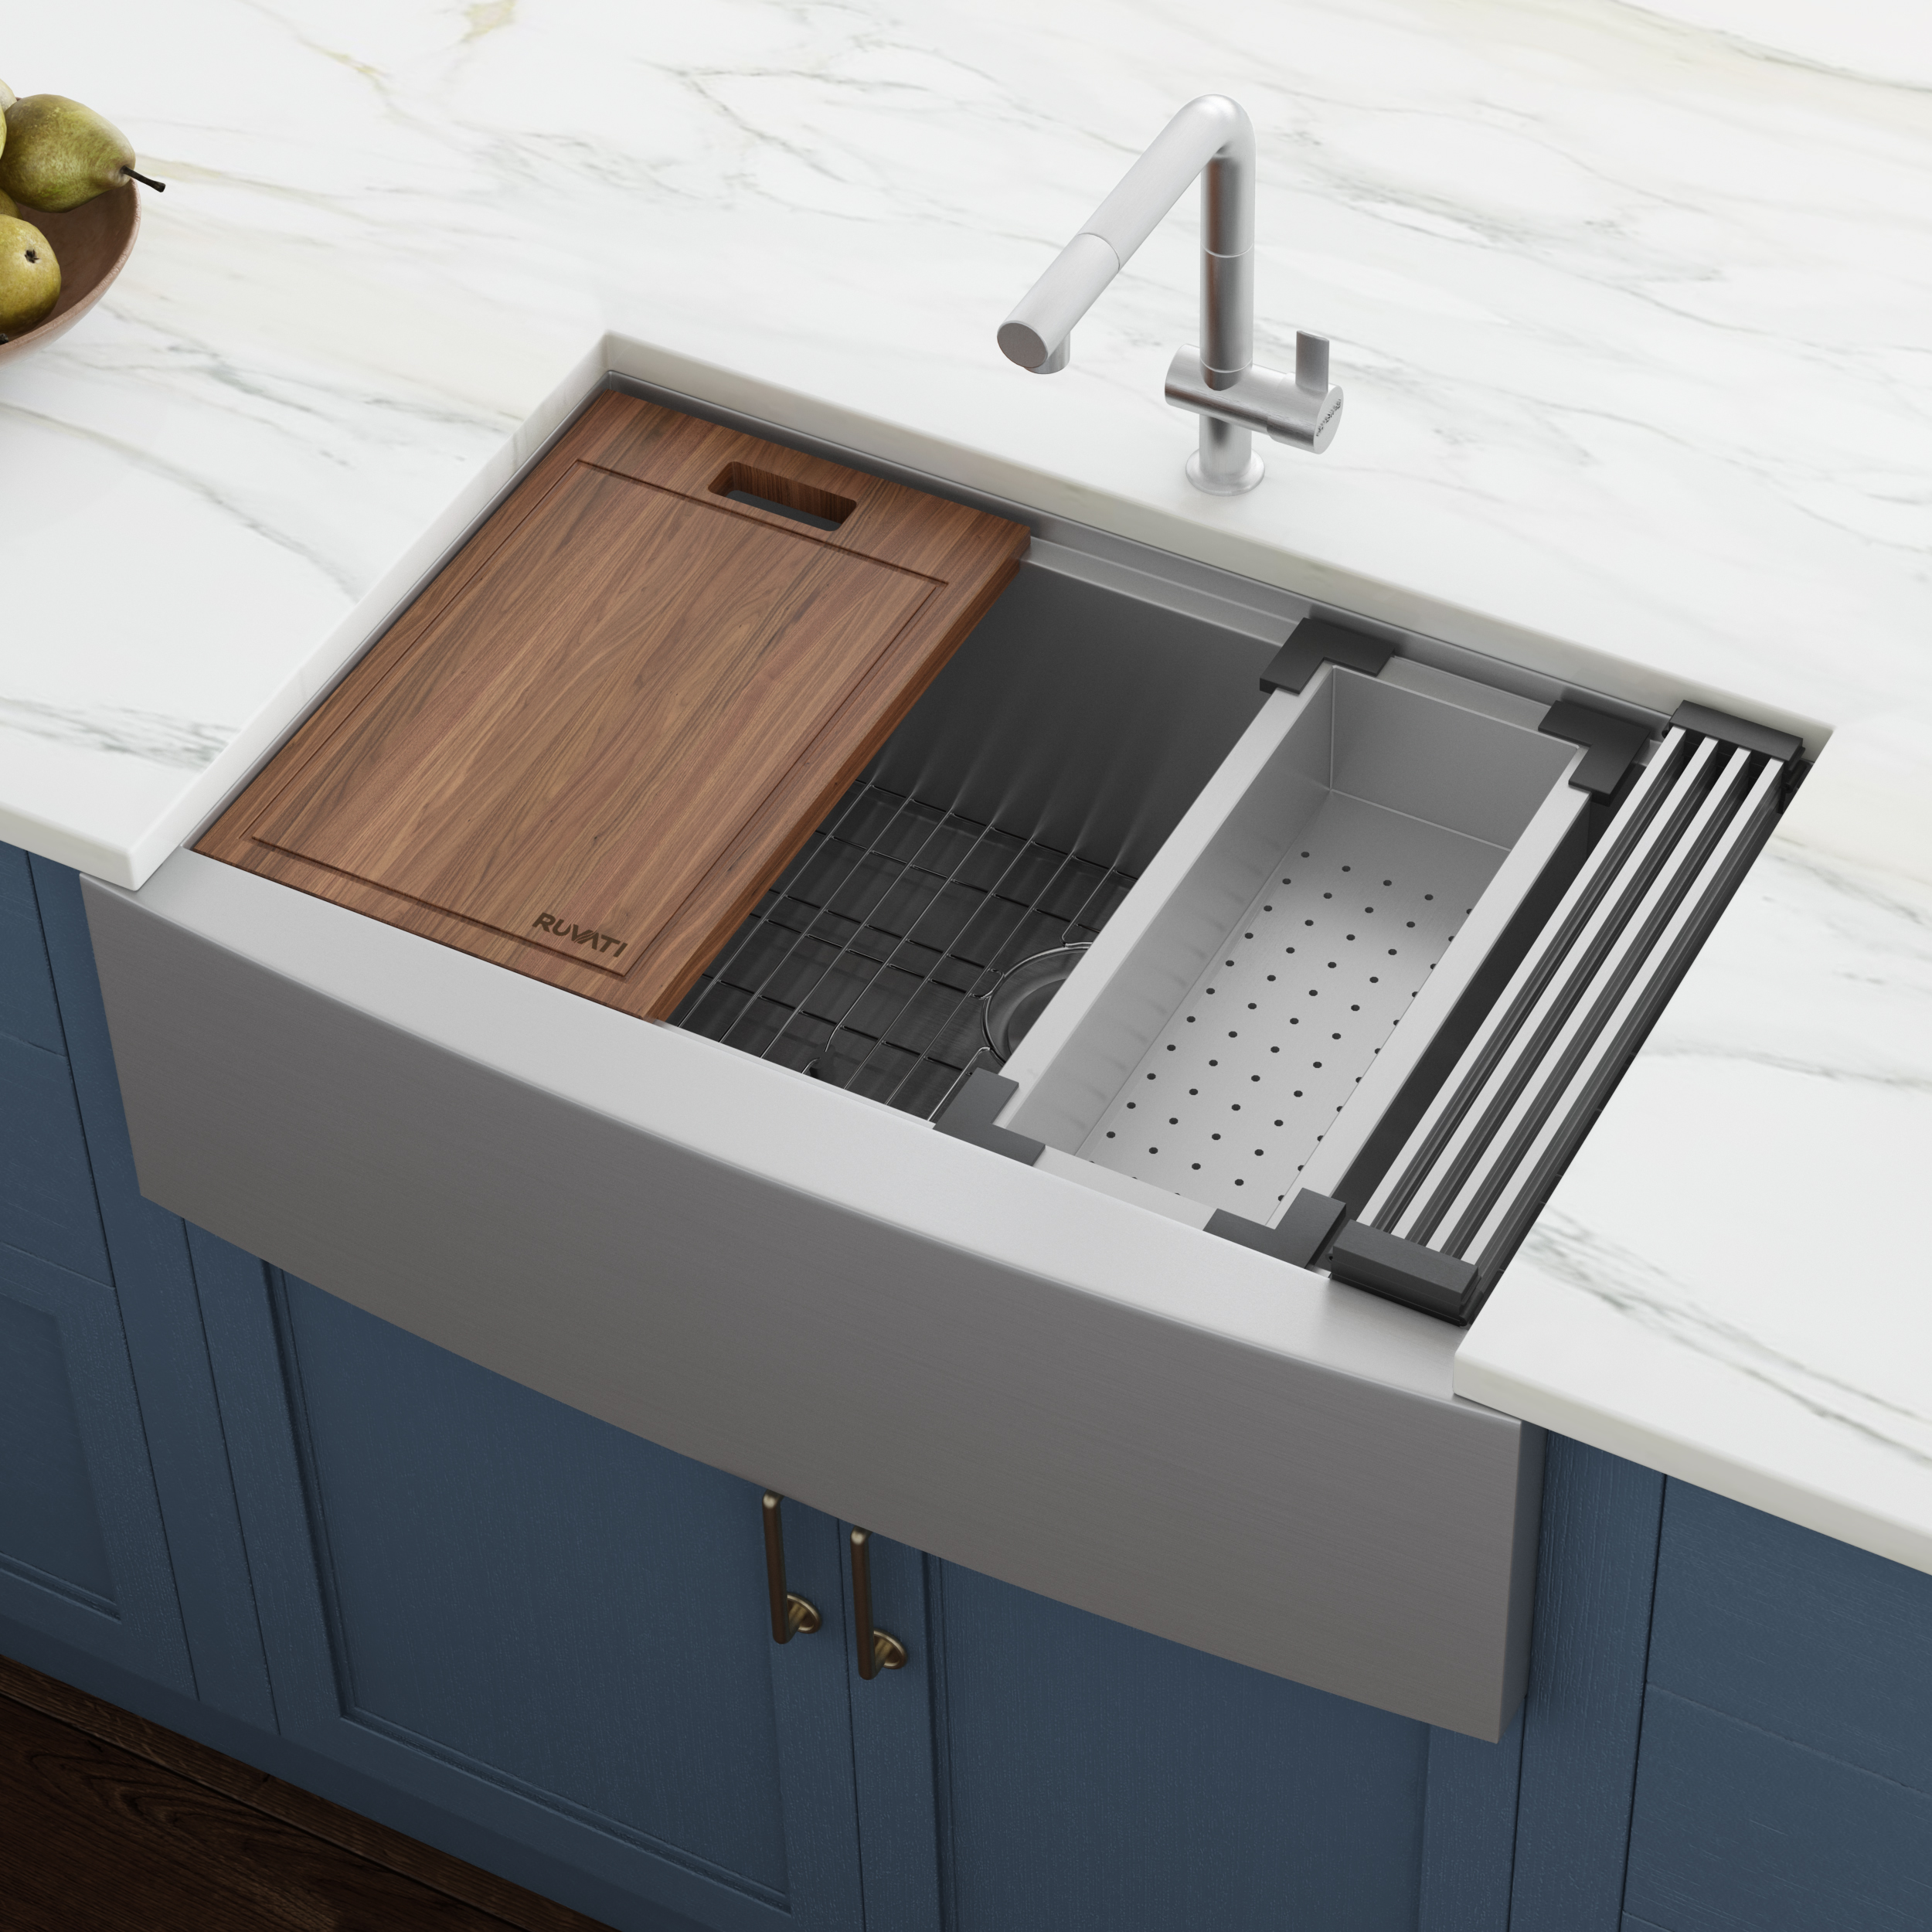 33 Inch Apron Front Workstation Farmhouse Kitchen Sink 16 Gauge Stainless Steel Single Bowl Ruvati Usa